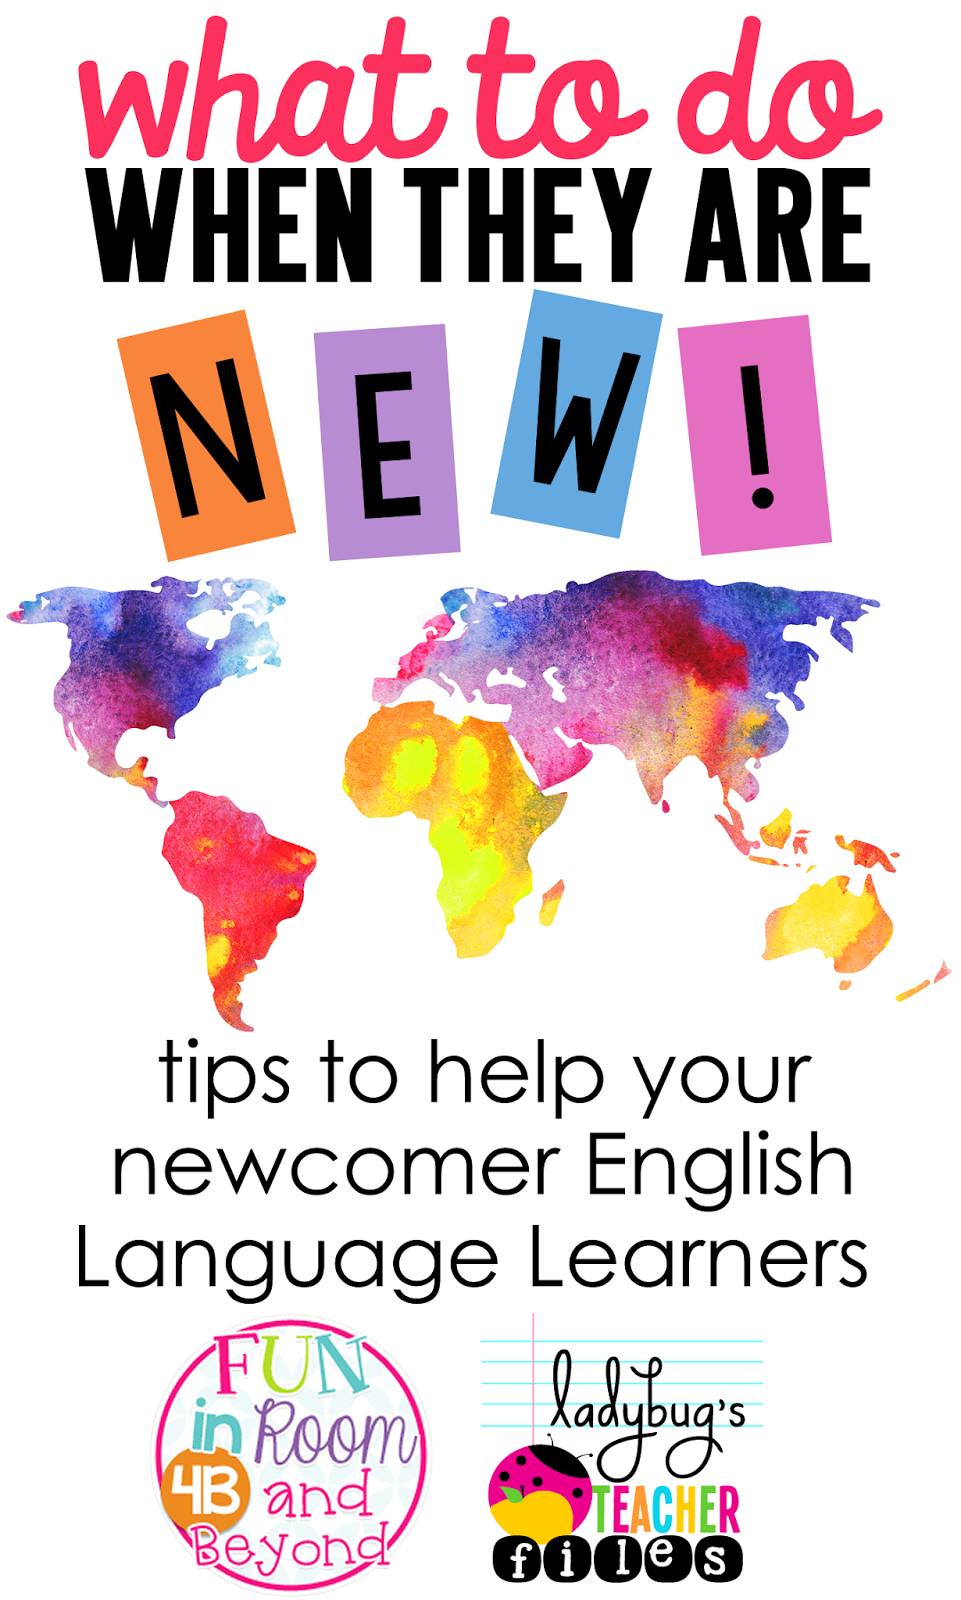 Tips to help your newcomer English Language Learners.